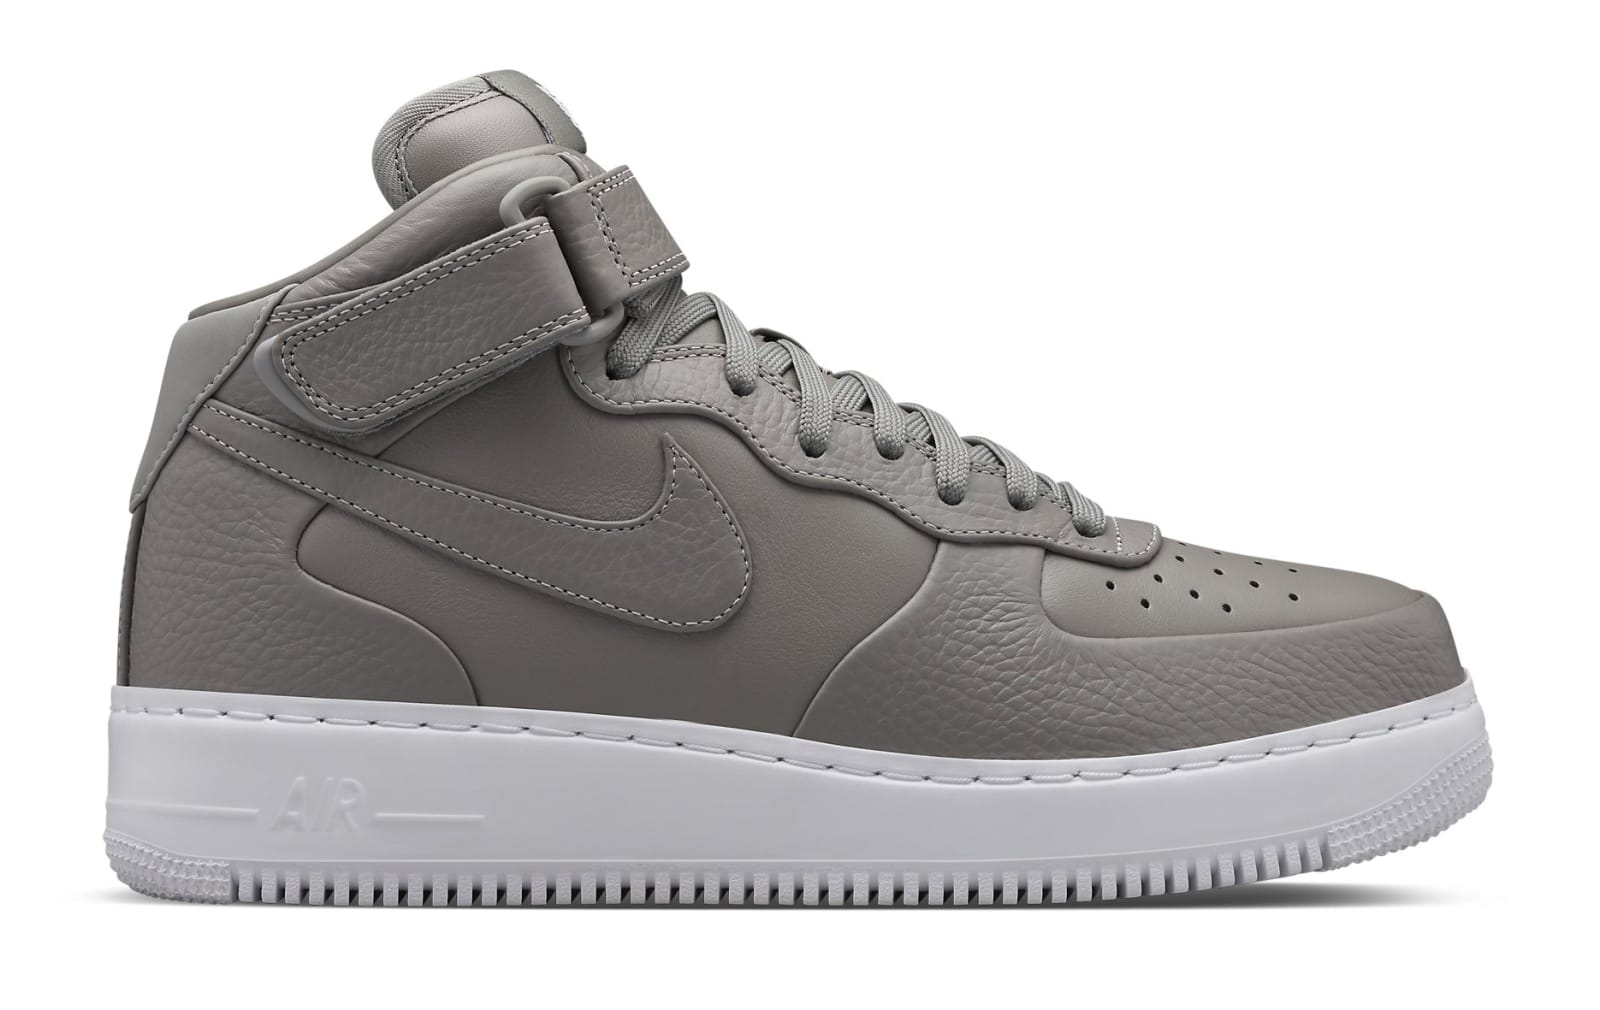 f76f986c842c87 NikeLab Air Force 1 Low